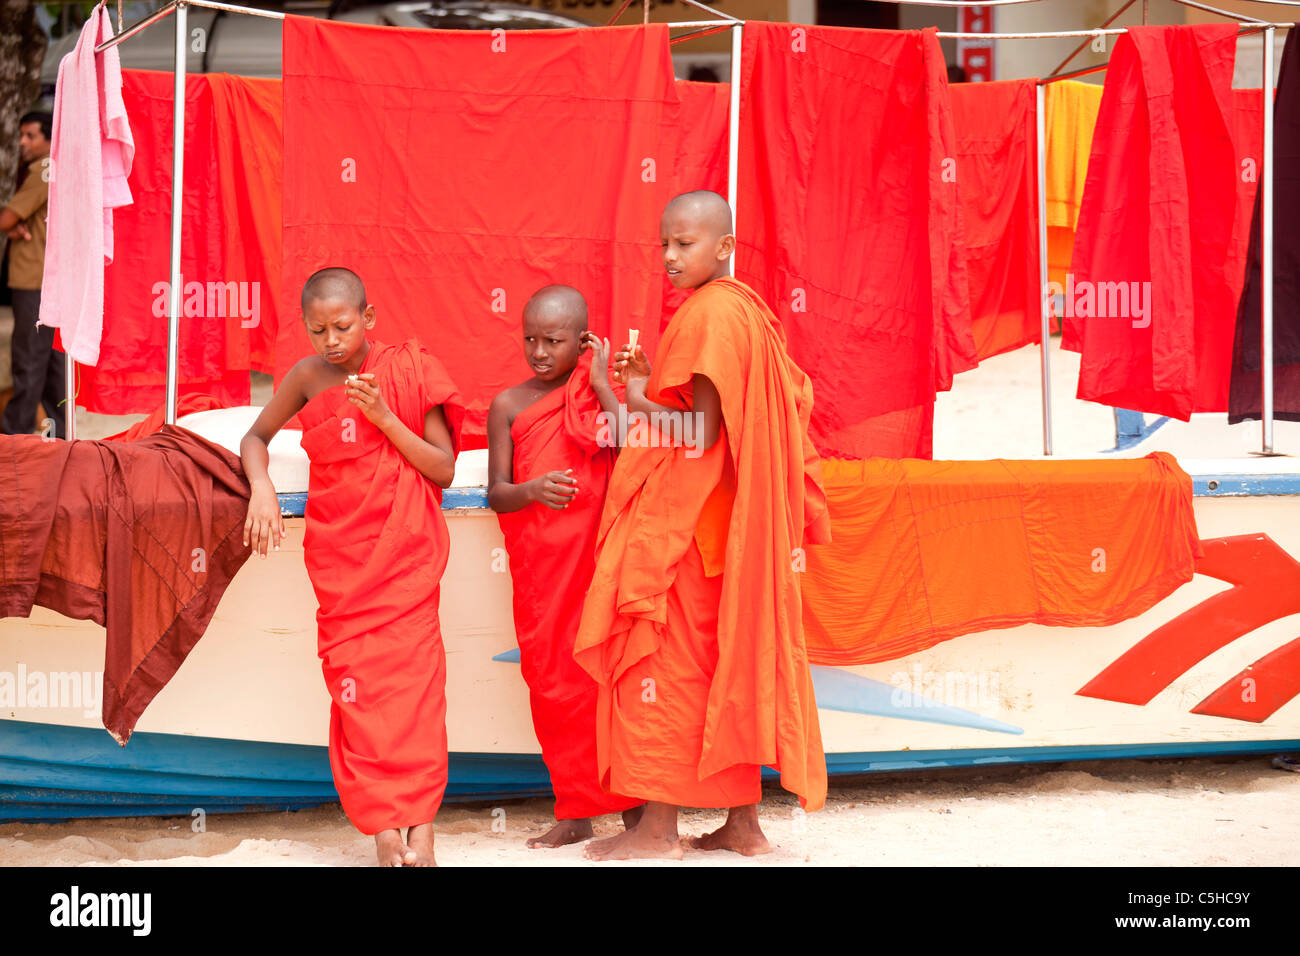 buddhist novices in typical orange robe and their clothes line at the beach in Polhena, Matara, LKA, Sri Lanka - Stock Image